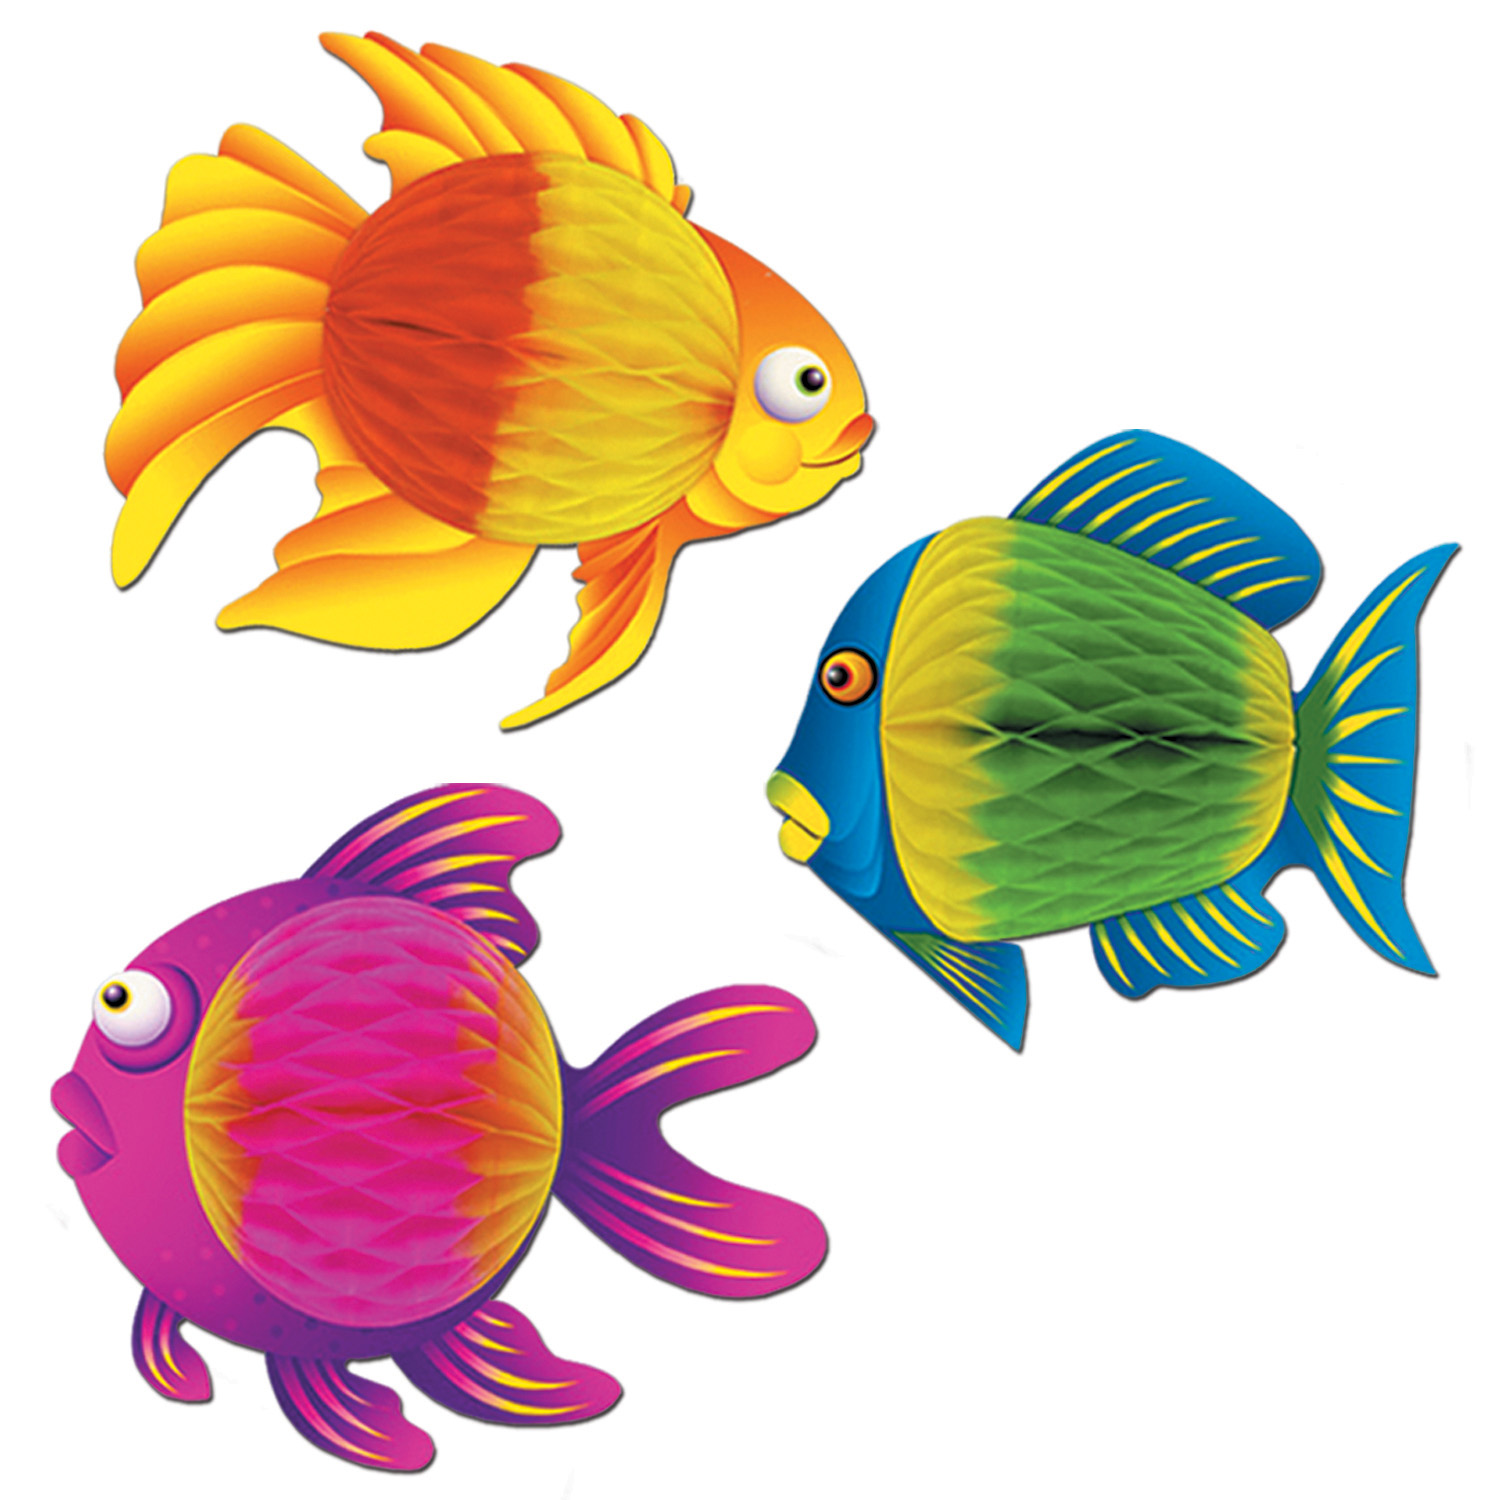 Color-Brite Tropical Fish (Pack of 12) Color-Brite Tropical Fish, decoration, luau, new years eve, summertime, beach, wholesale, inexpensive